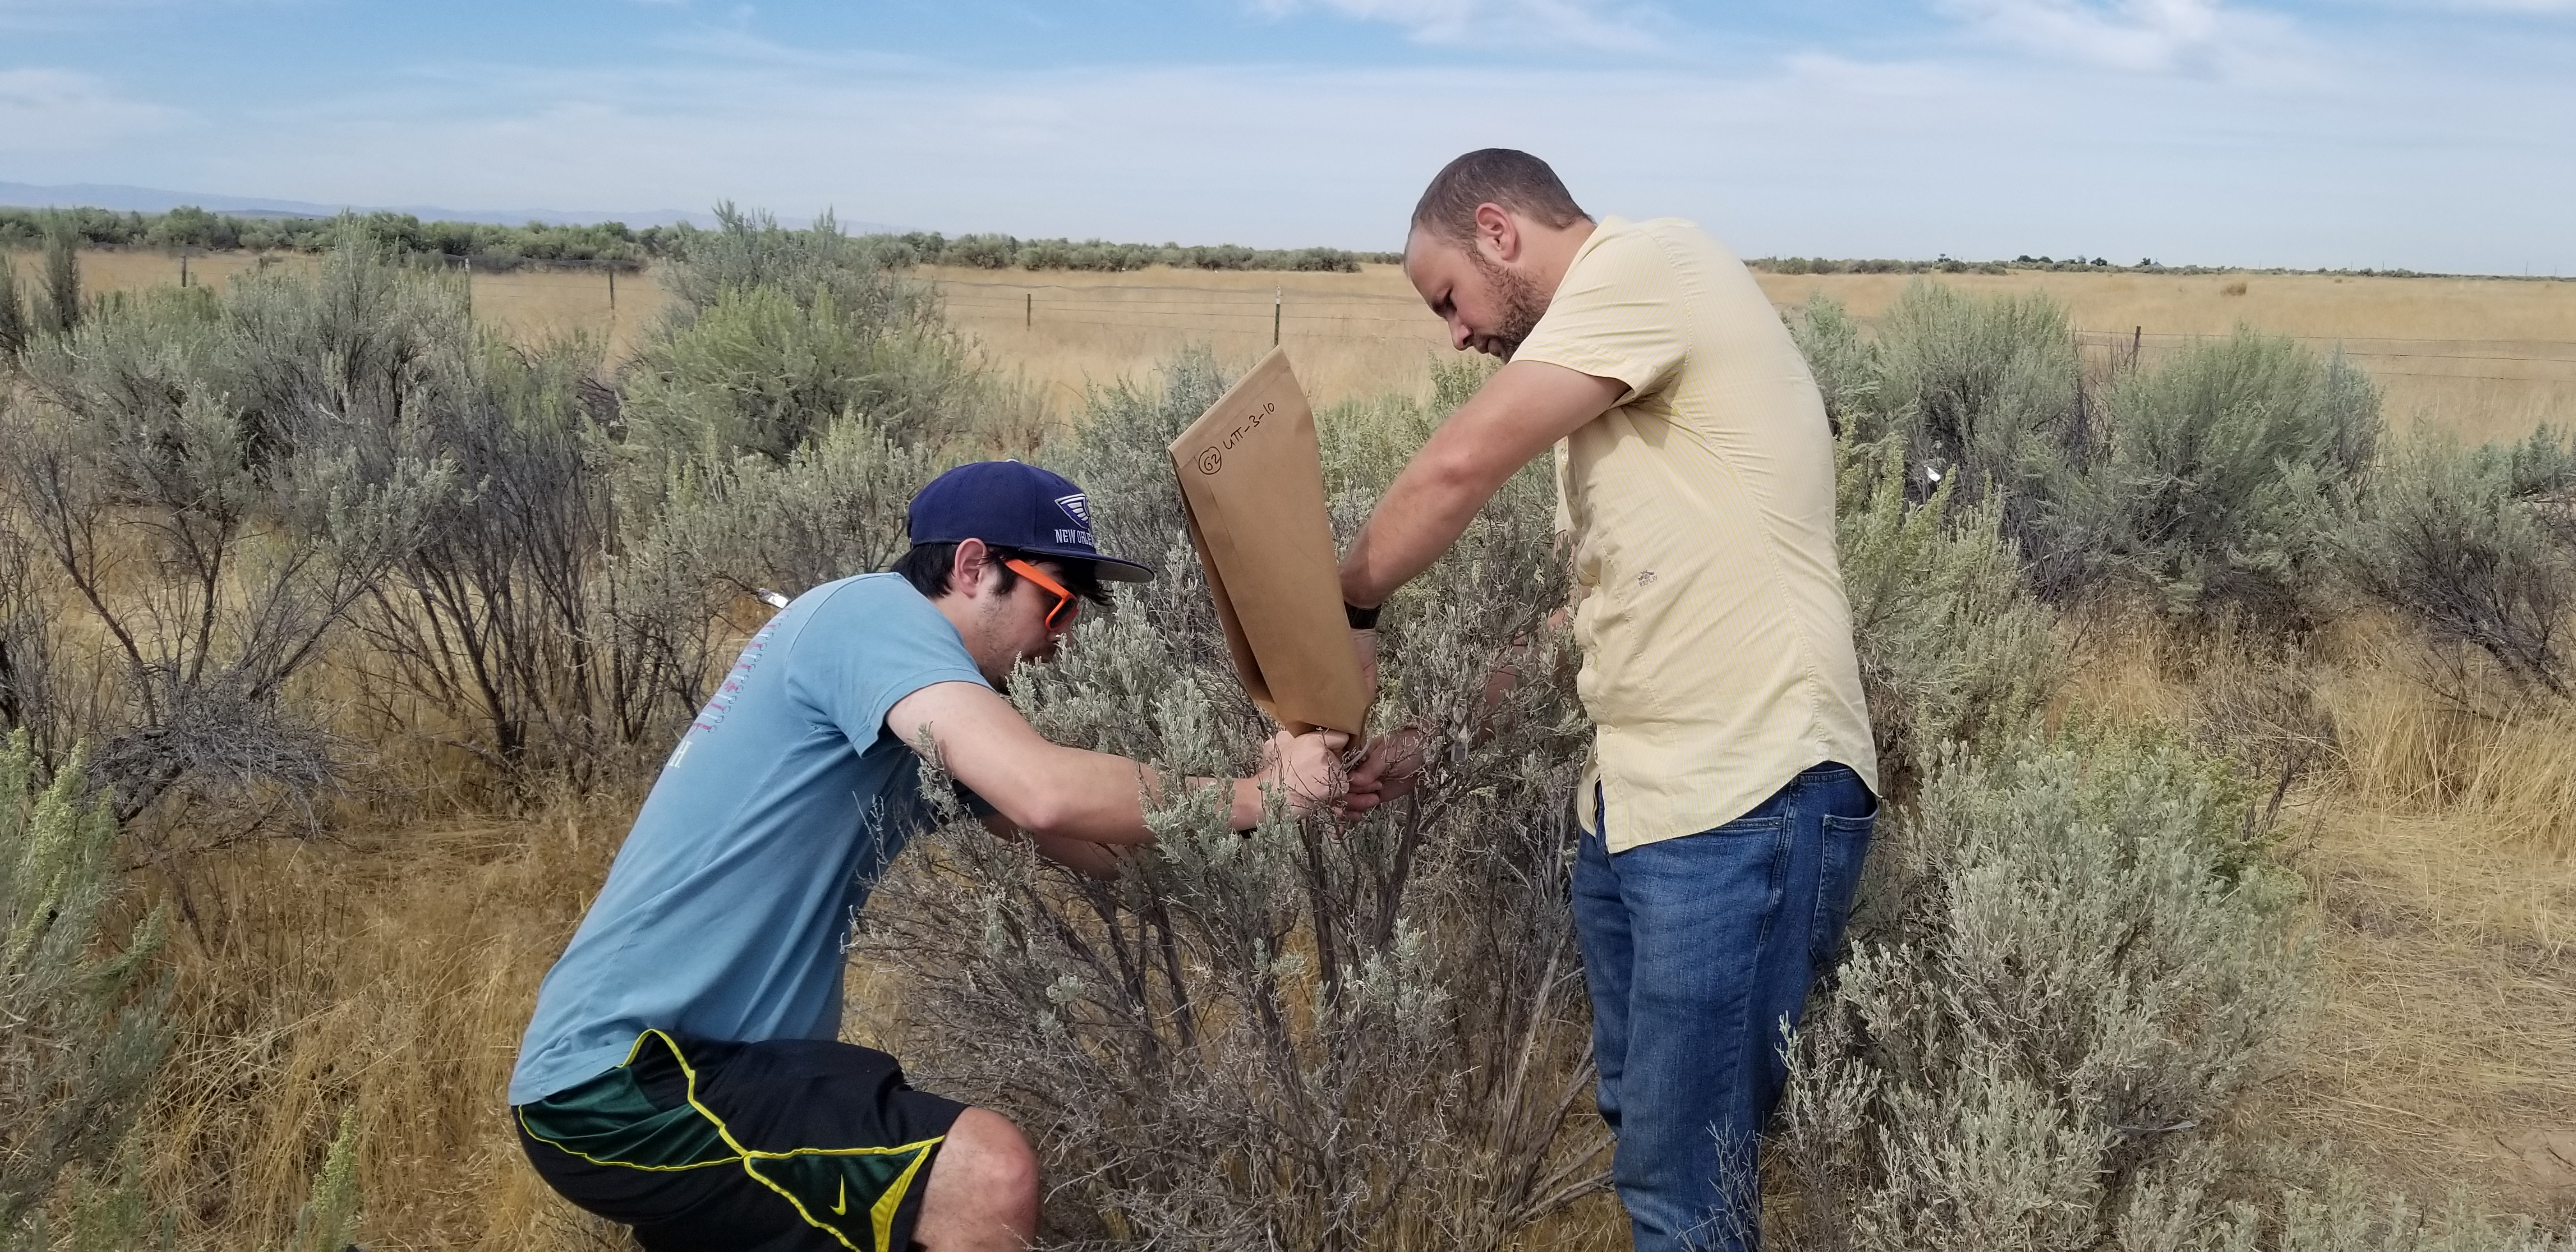 Two men outside are putting a bag over a sagebrush to collect a sample.